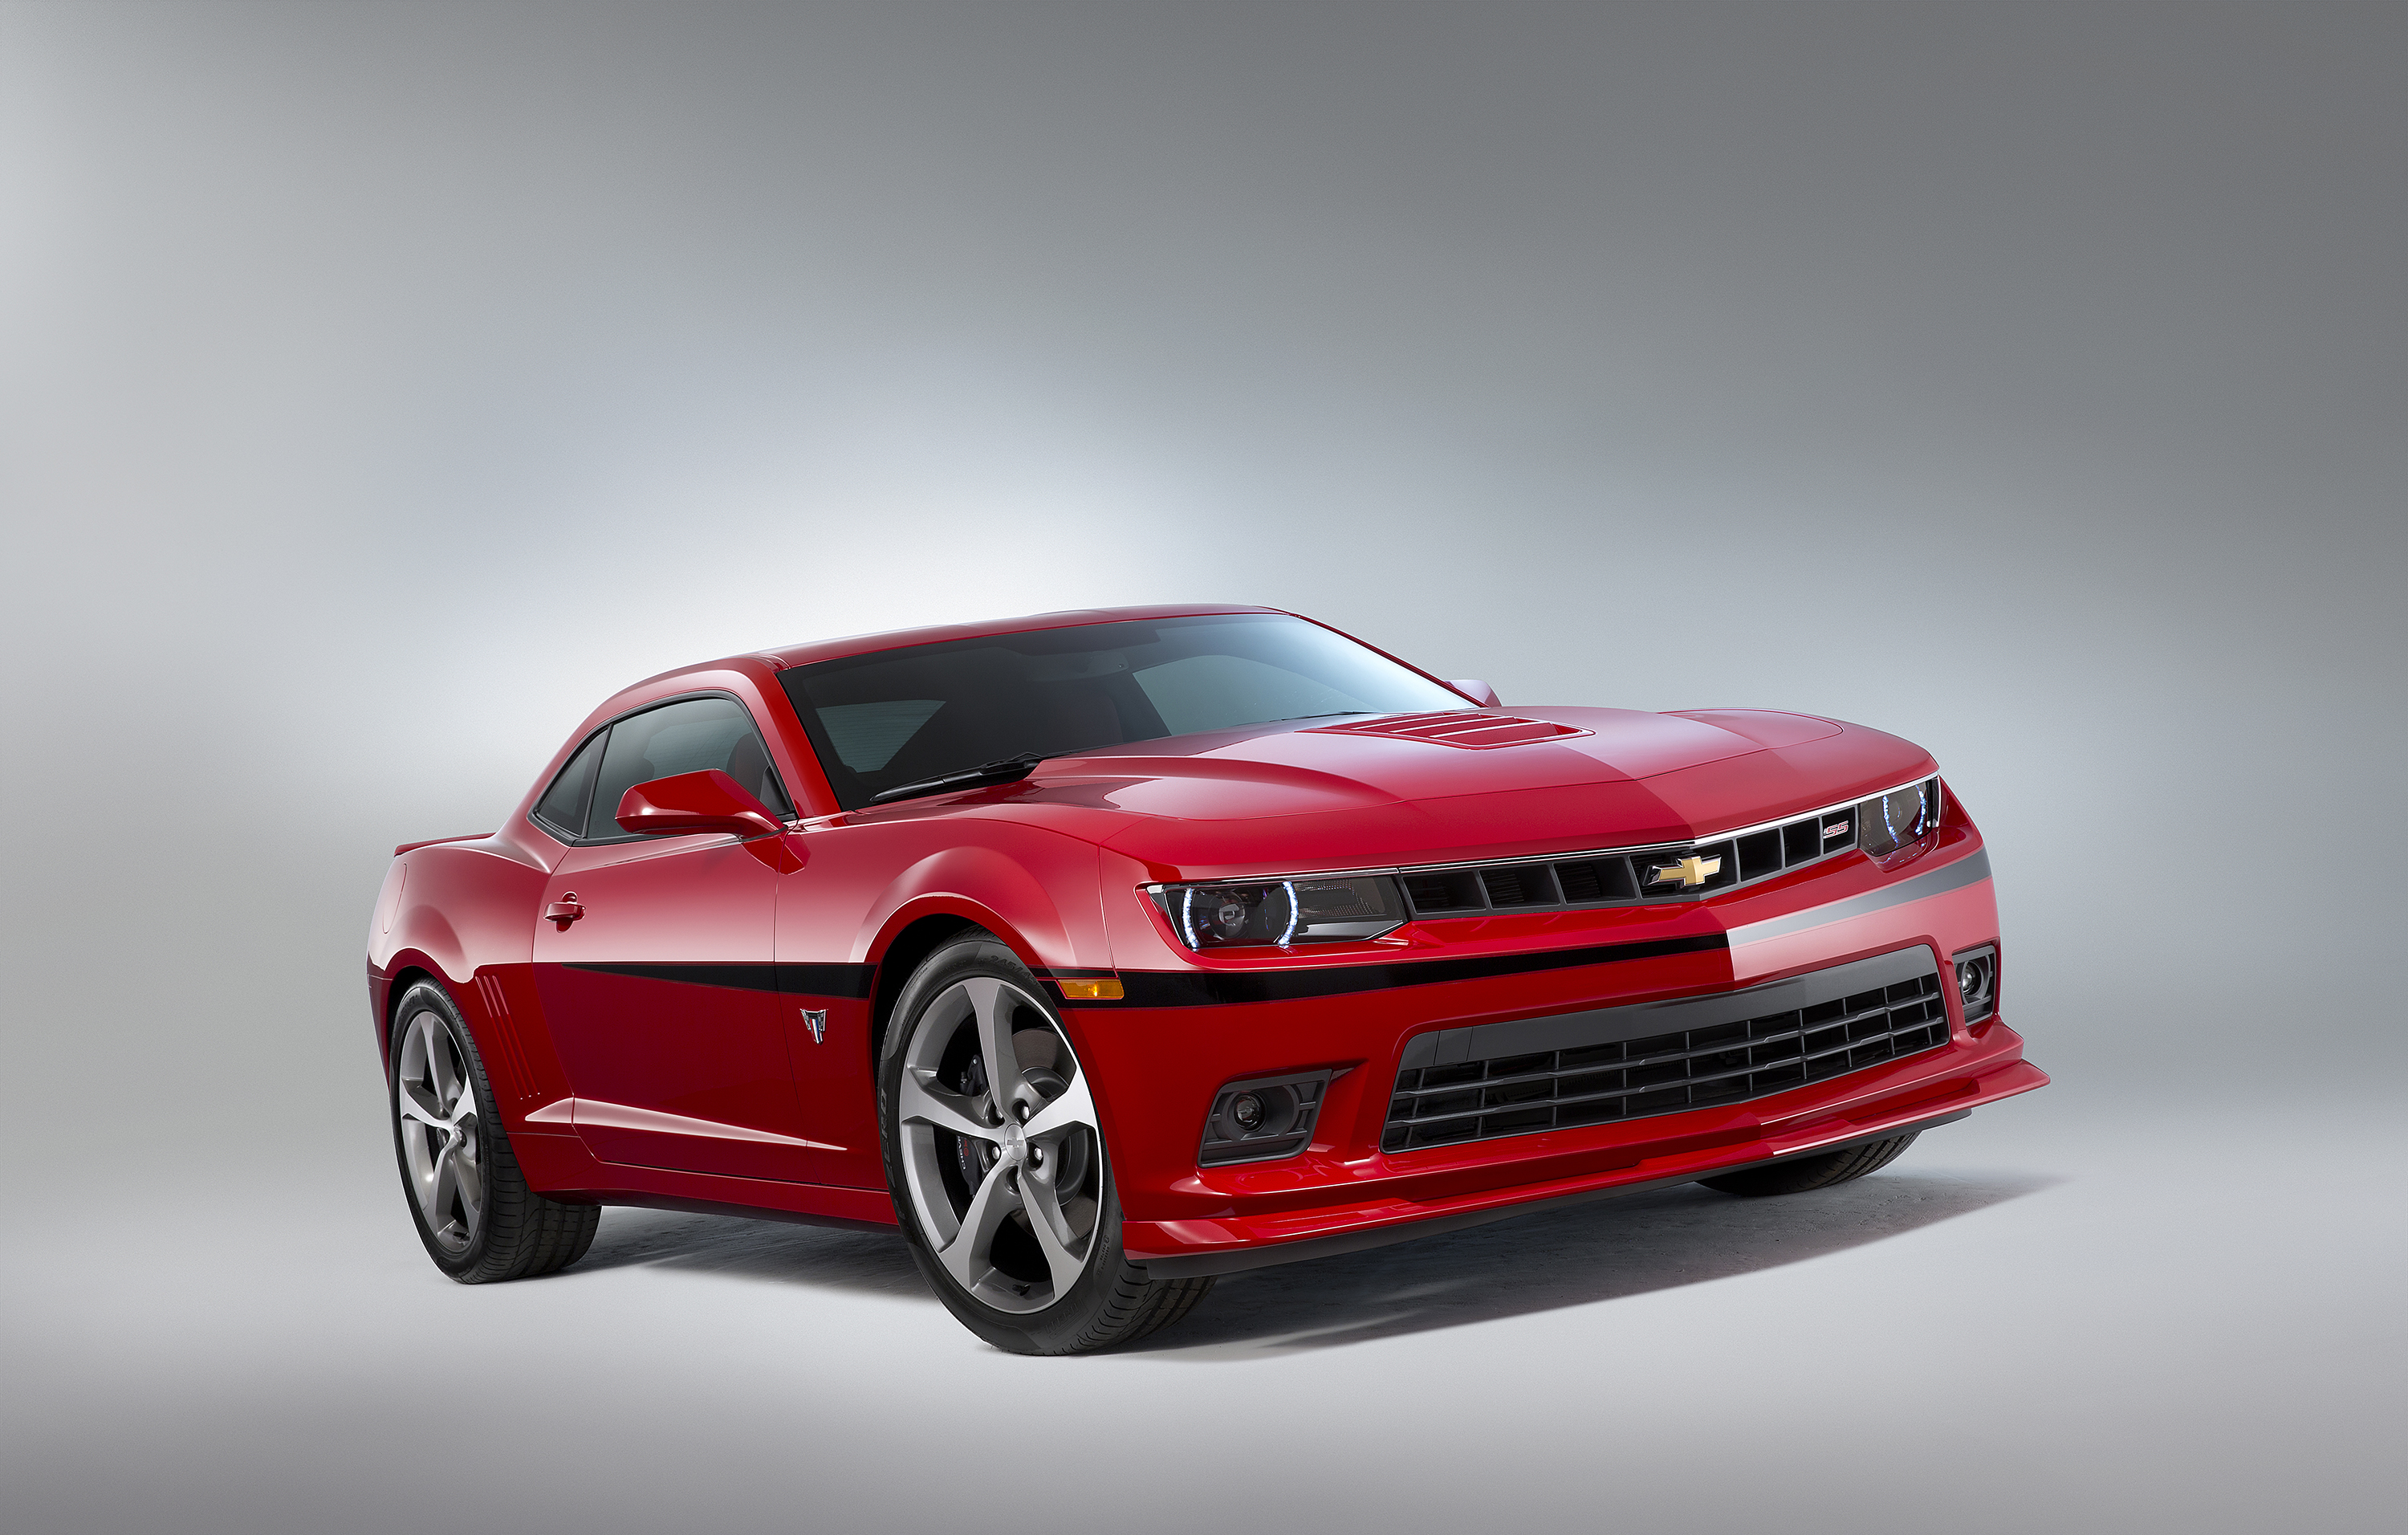 2015 Camaro Commemorative Edition Debuts at SEMA